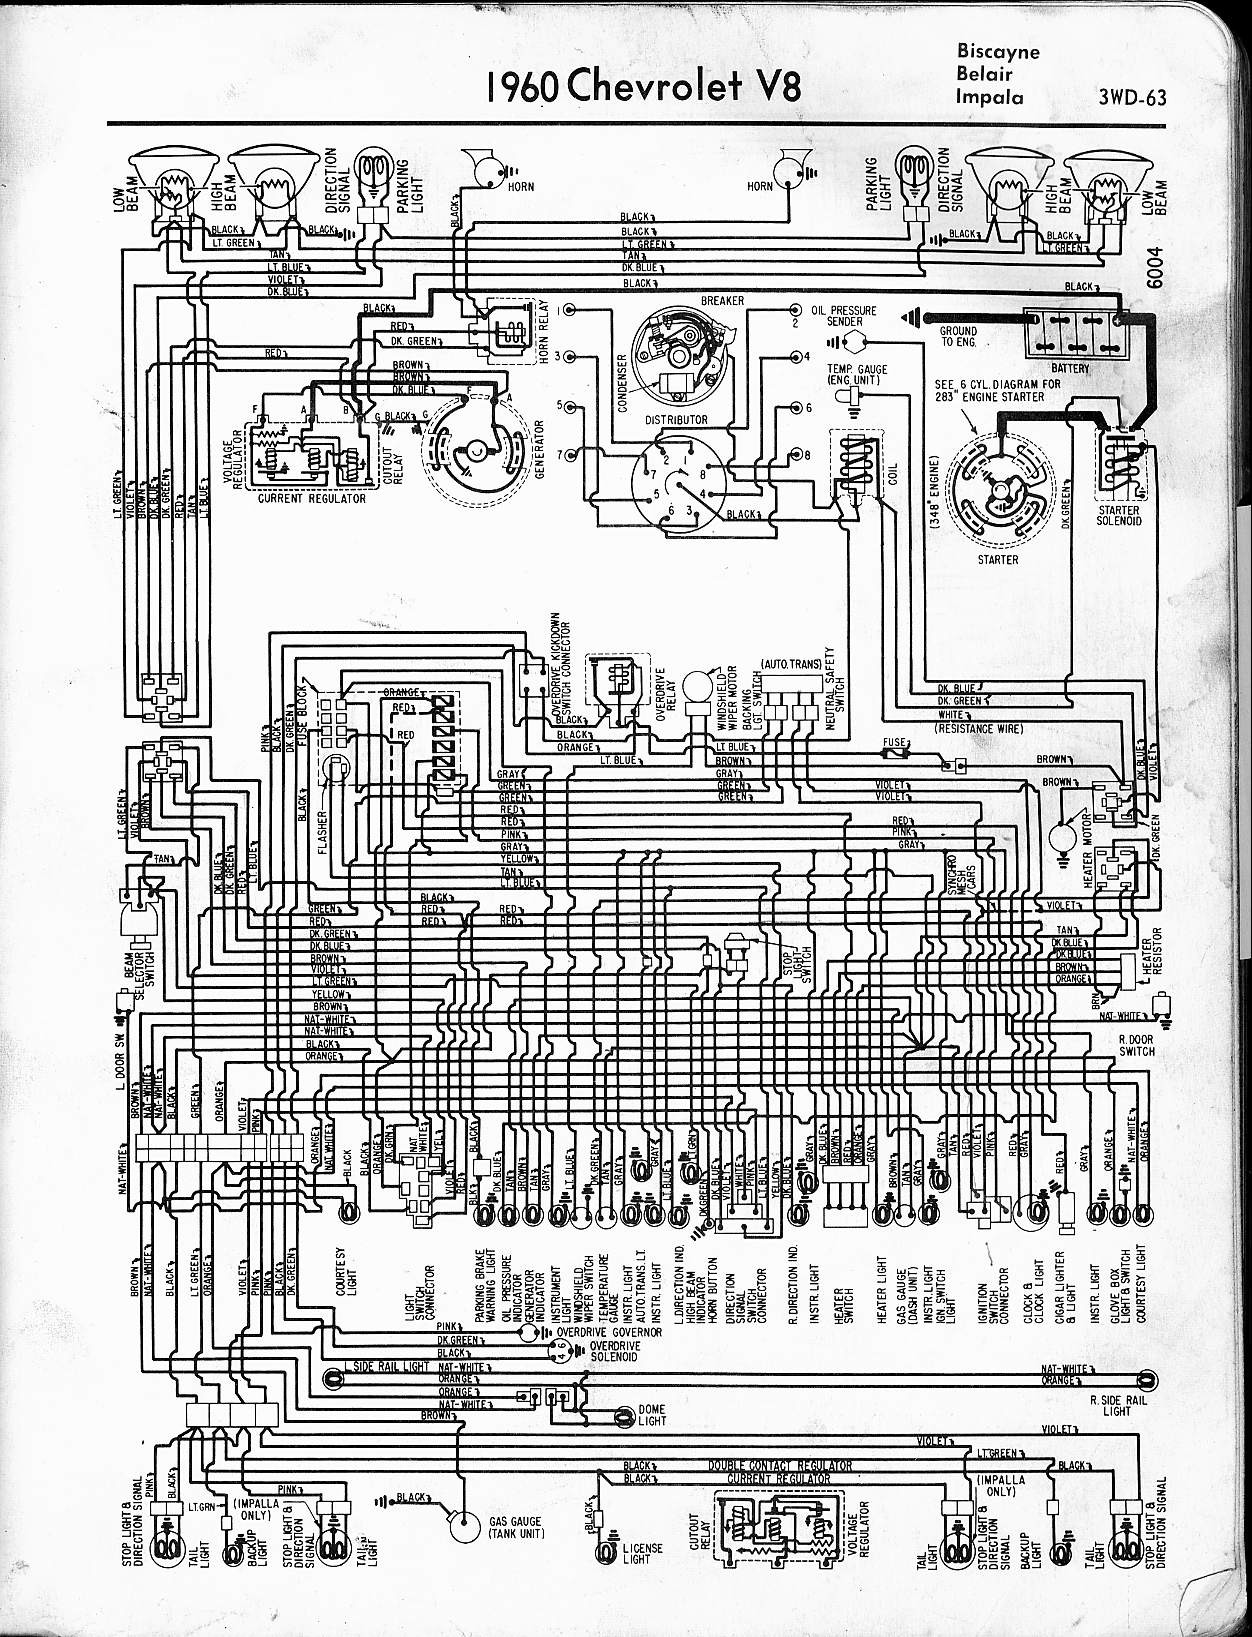 2008 Chevy Impala Wiring Diagram 57 65 Chevy Wiring Diagrams Of 2008 Chevy Impala Wiring Diagram Oxygen Sensor 2006 Impala Wiring Diagram Wiring Wiring Diagrams